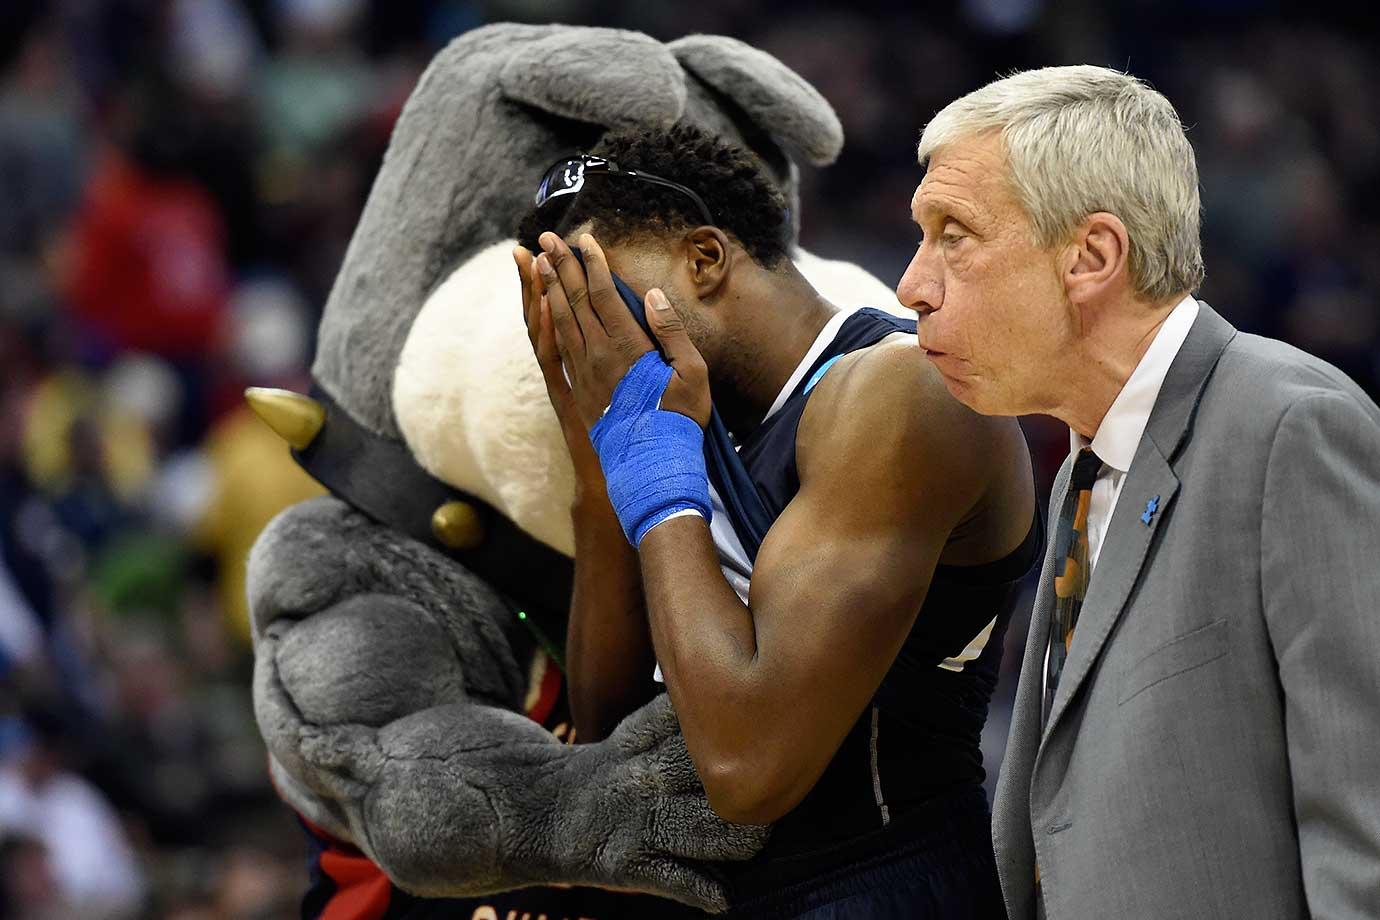 Fresno State's Karachi Edo is hugged by the team's Bulldog mascot as he walks off the court after an 80-69 loss to Utah.